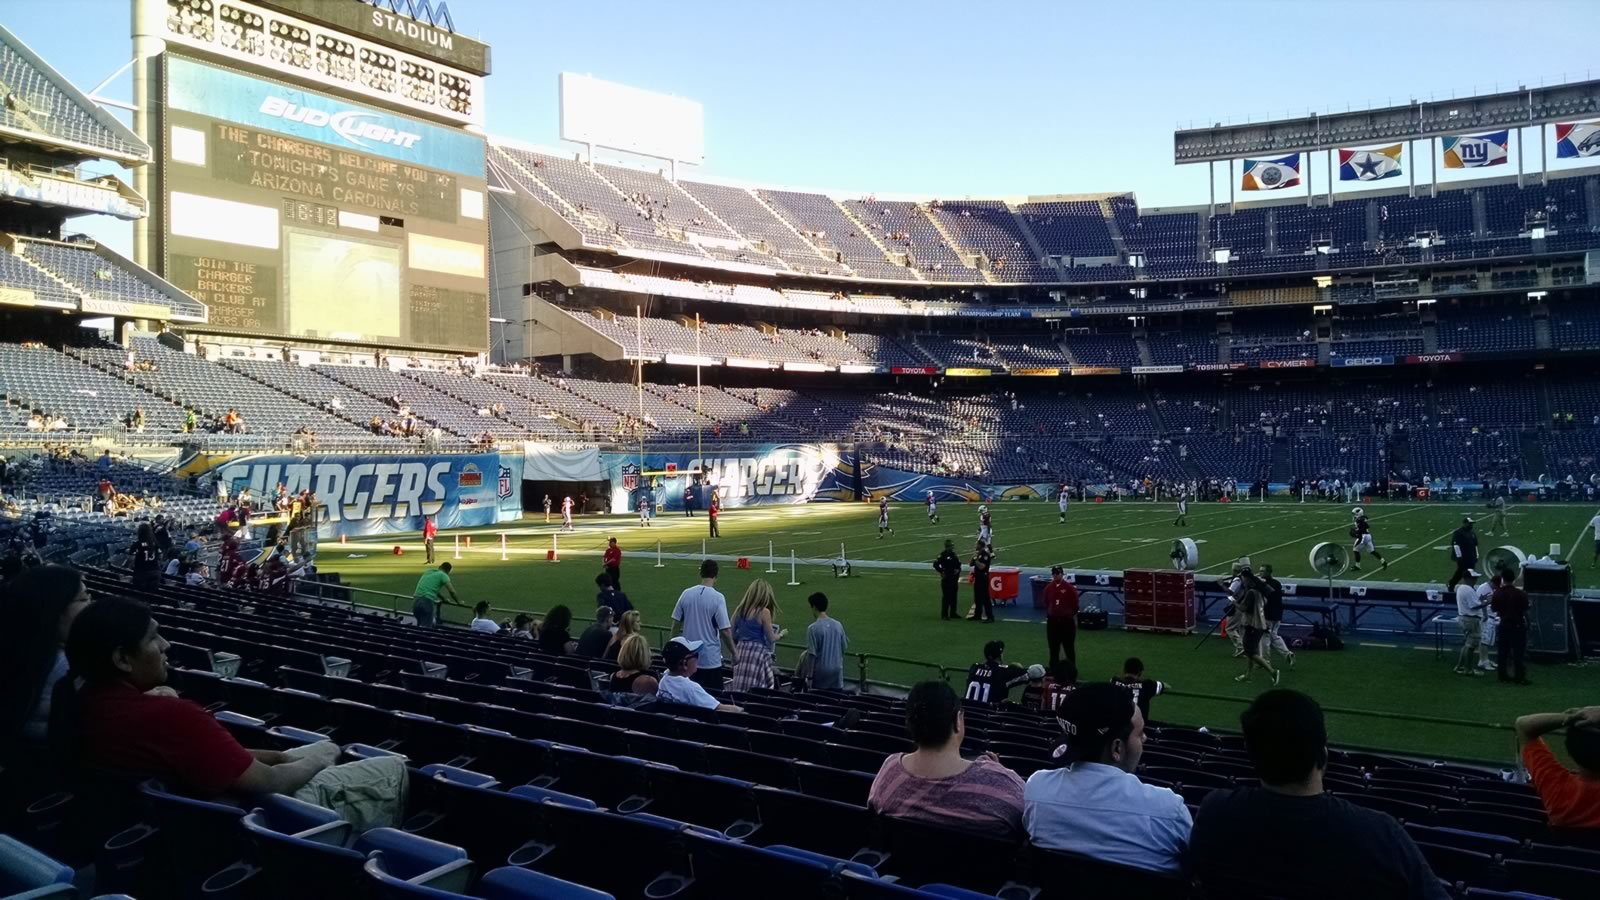 Seat View for SDCCU Stadium Field 5, Row 14, Seat 16